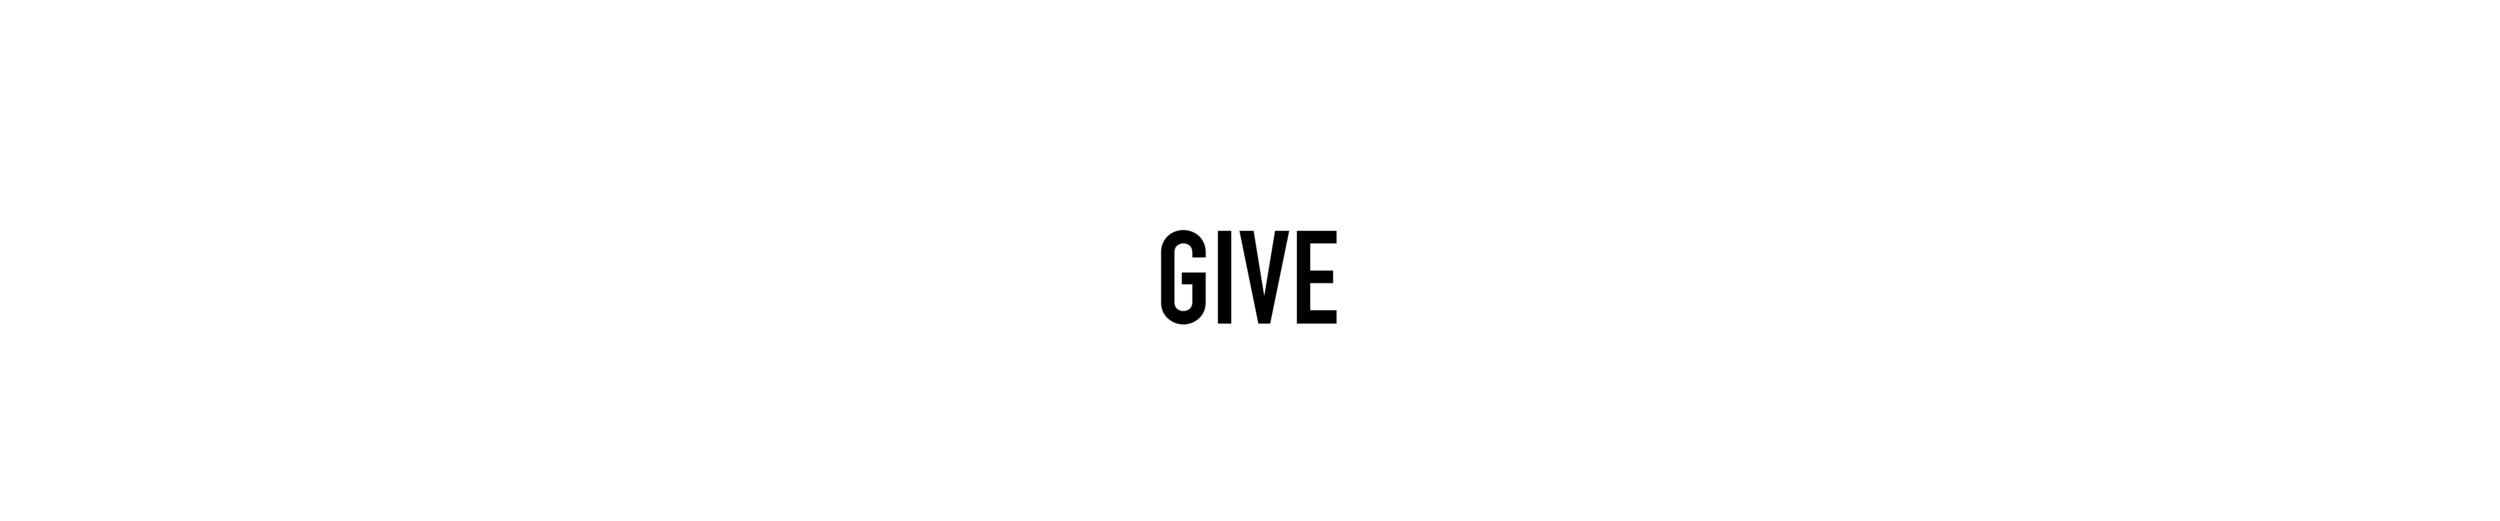 Give-01.png